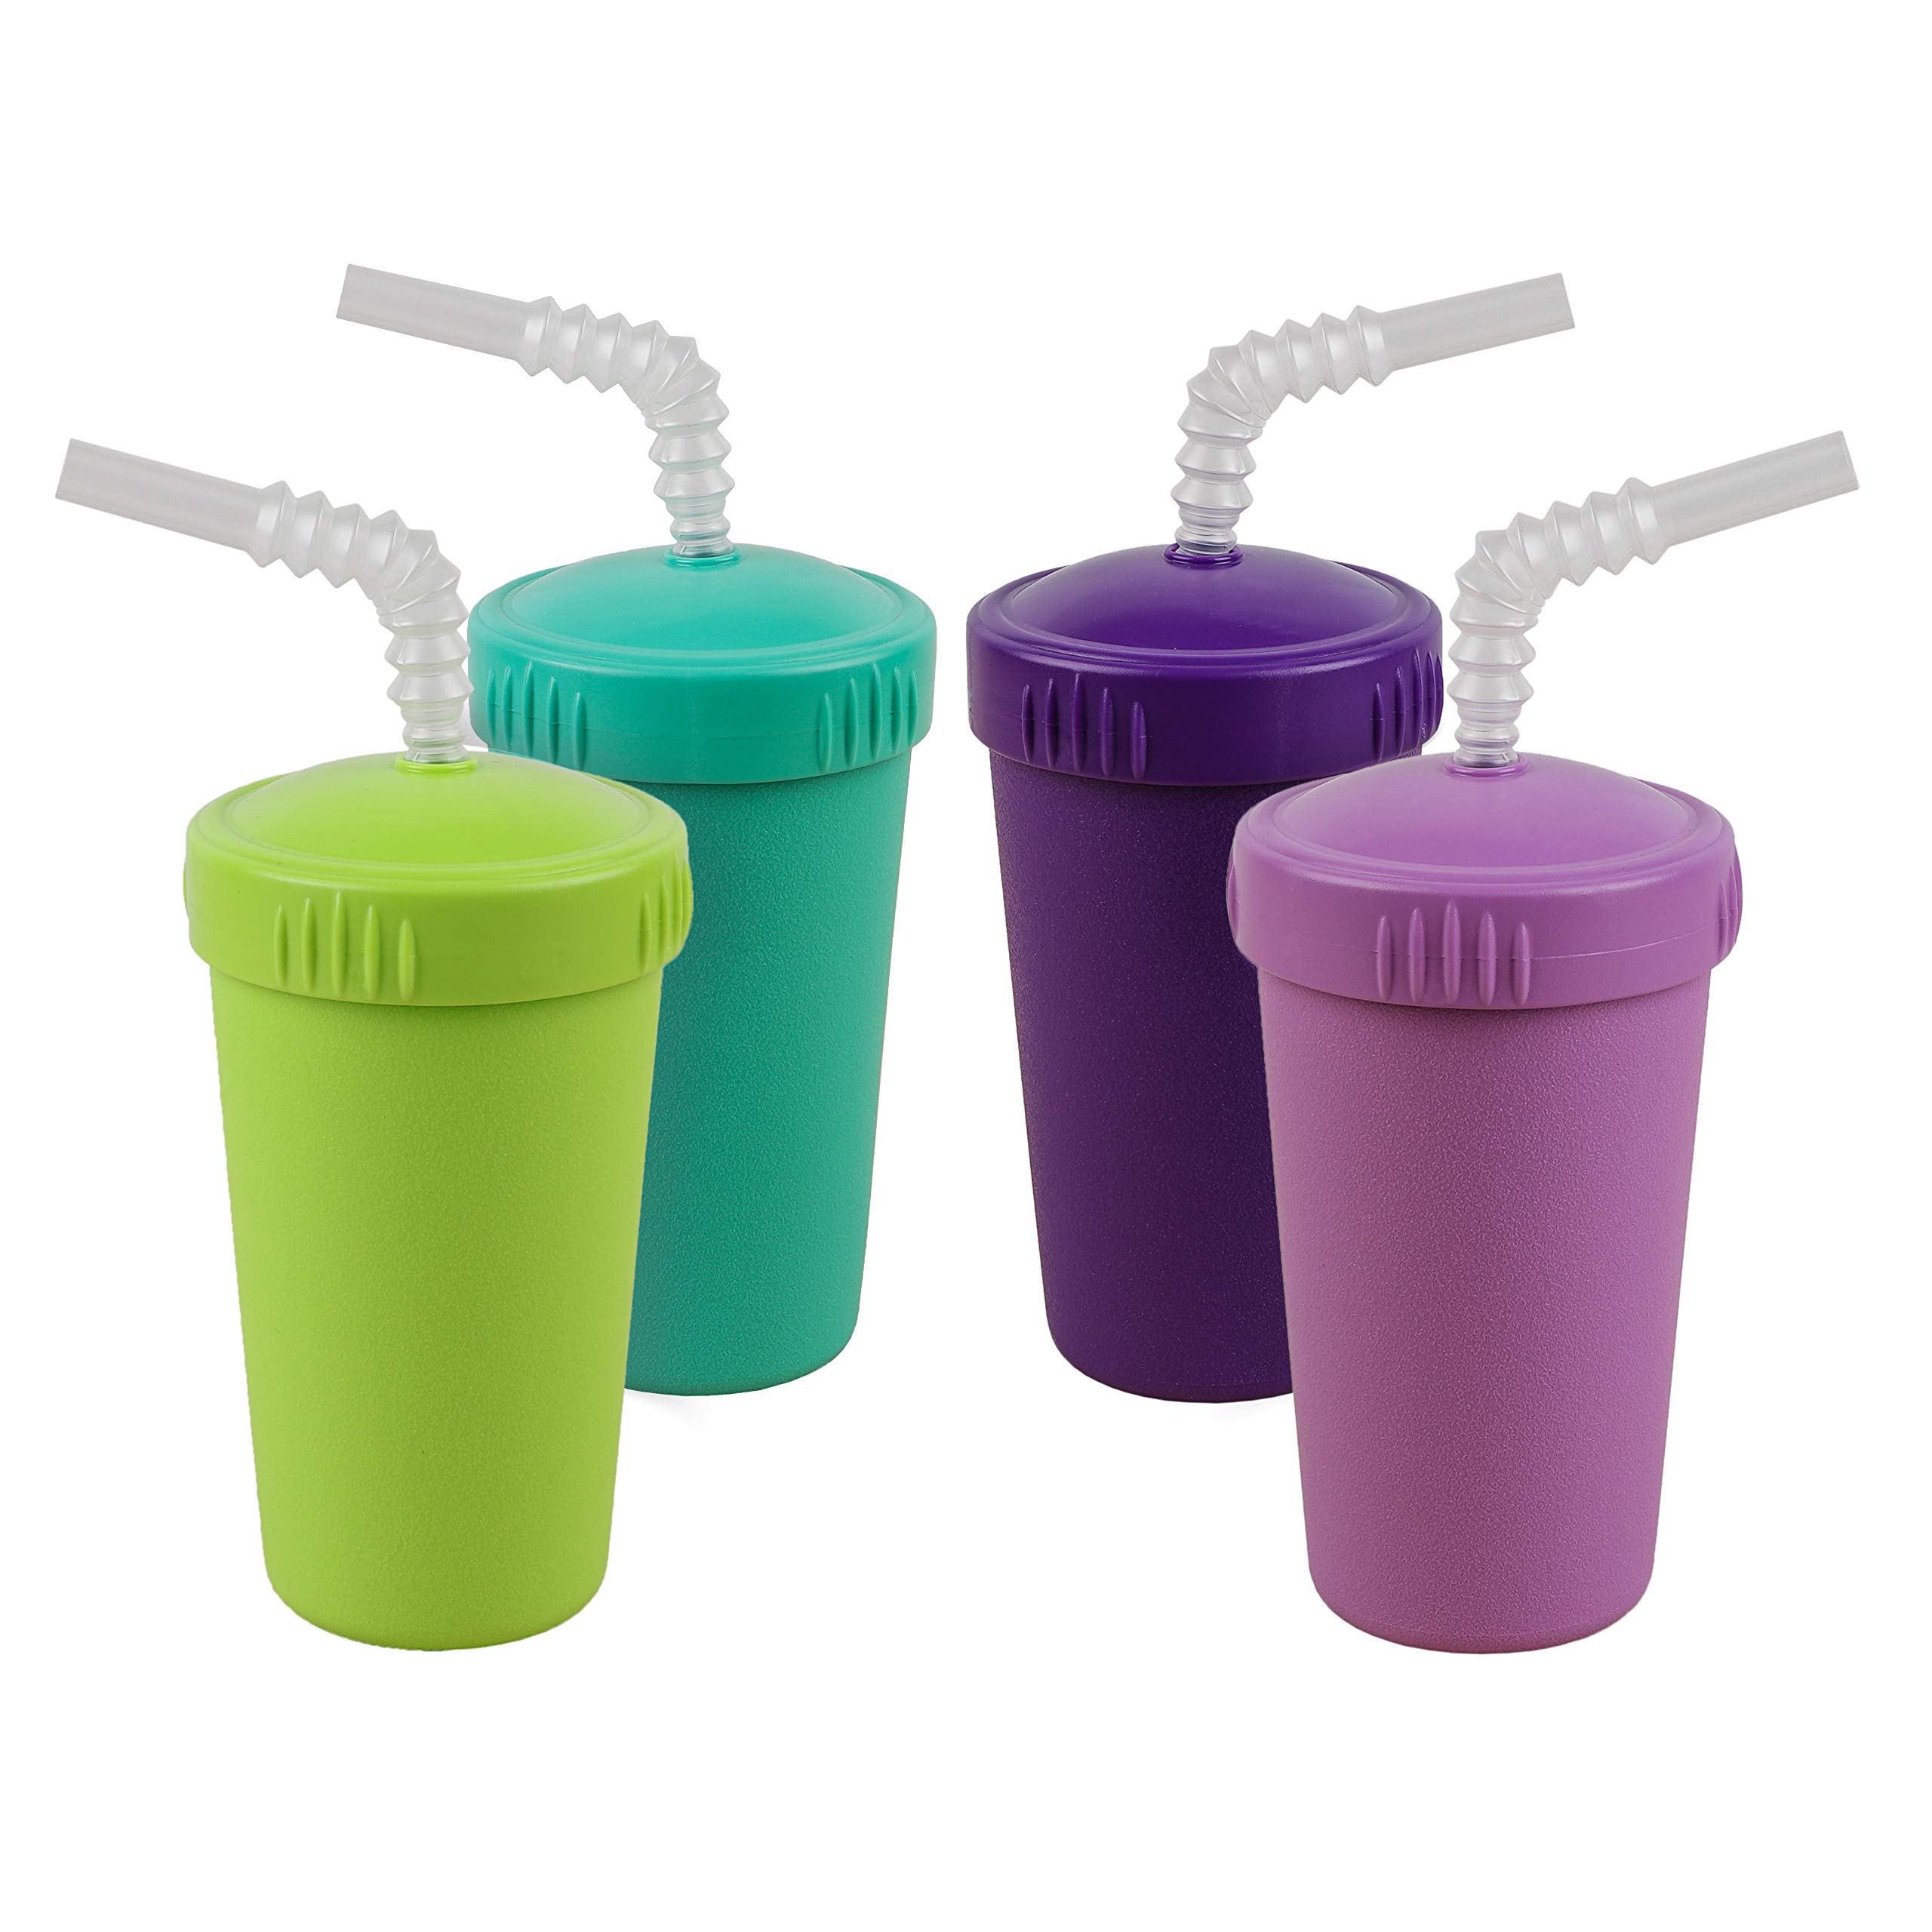 Re-Play Made in USA 4pk Straw Cups with Bendable Straw in Aqua, Purple, Lime Green and Amethyst   Made from Eco Friendly Heavyweight Recycled Milk Jugs - Virtually Indestructible (Mermaid+)